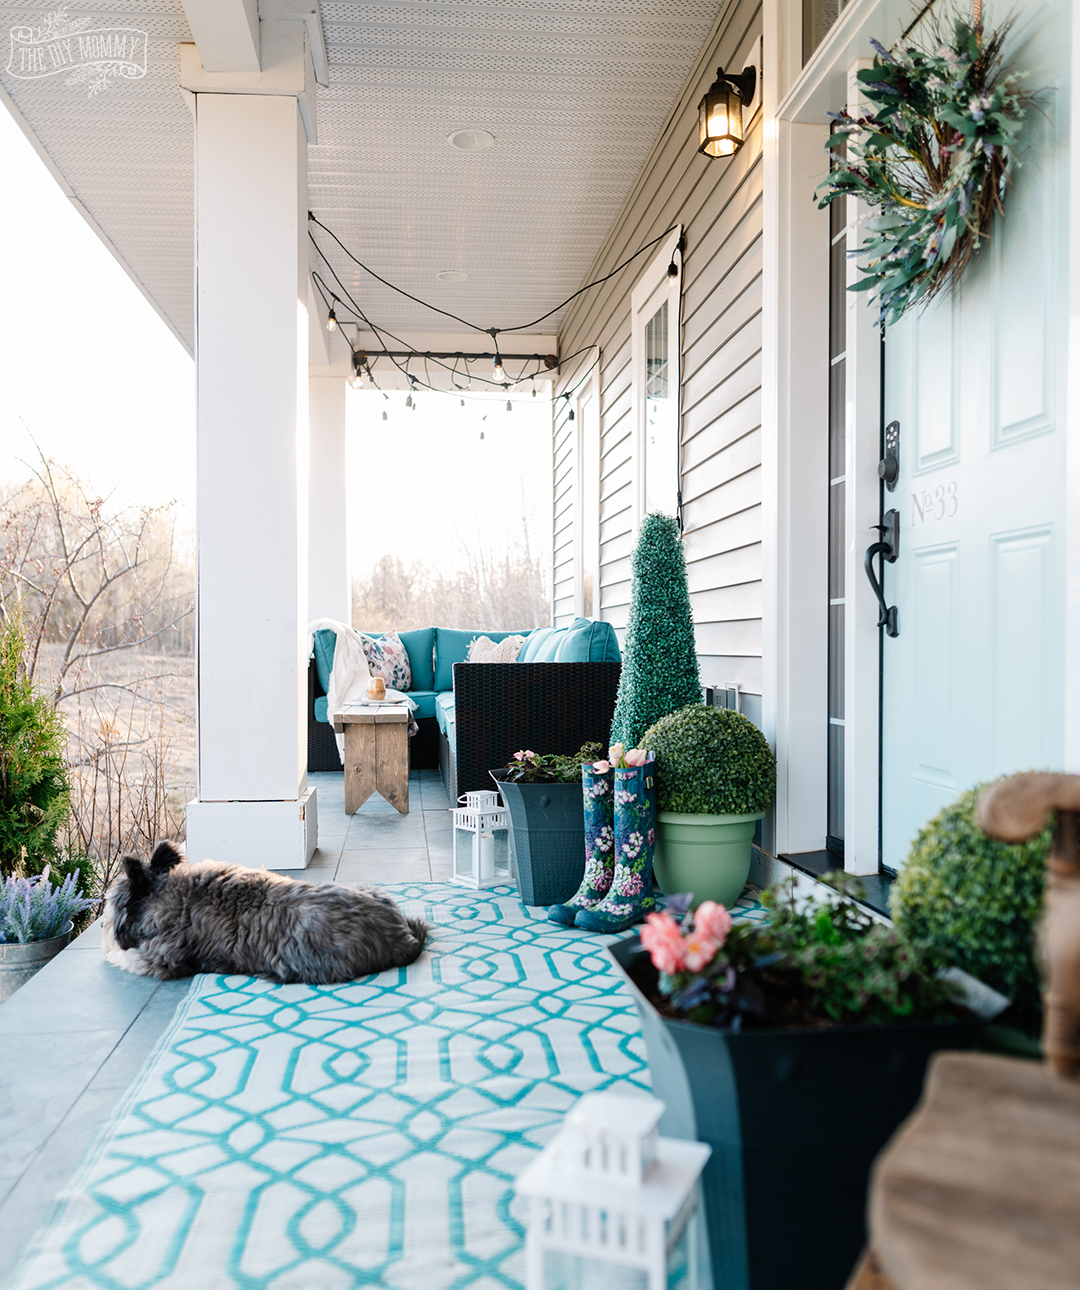 Simple ways to refresh your porch like painting a front door, using what you have on hand, cleaning and planting easy planters